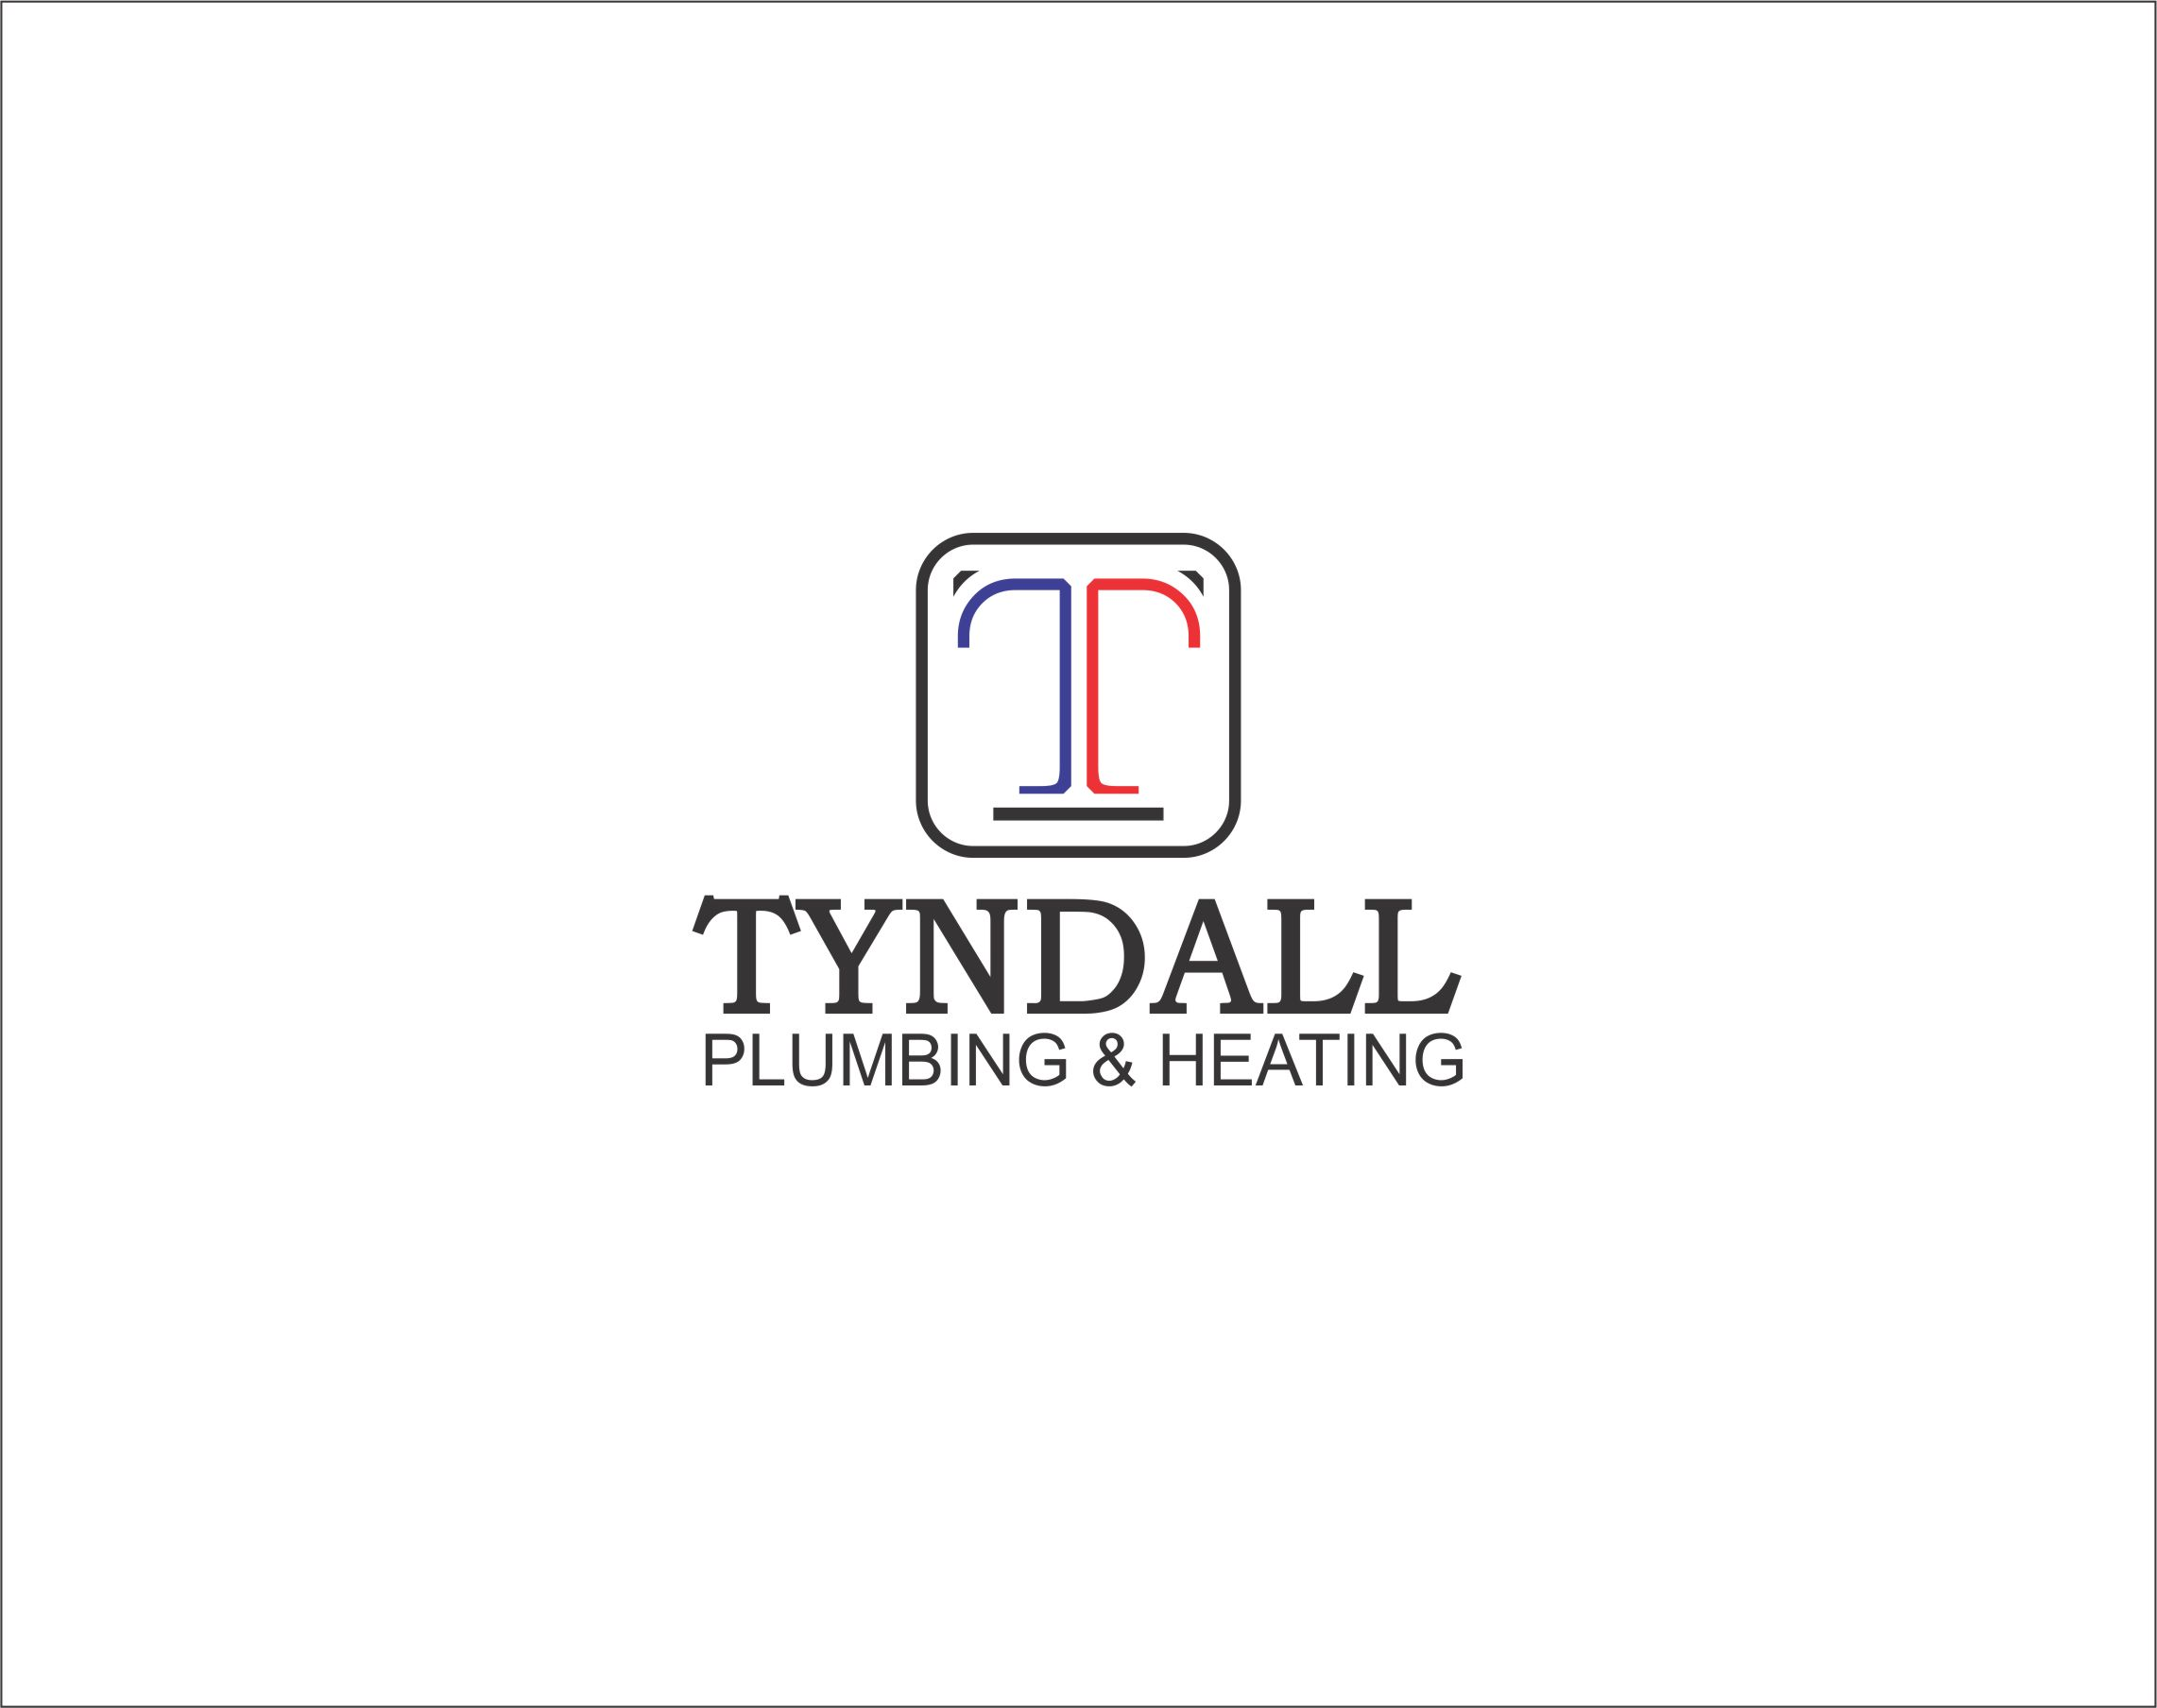 Logo Design by Nikola Kapunac - Entry No. 99 in the Logo Design Contest Imaginative Logo Design for Tyndall Plumbing & Heating.